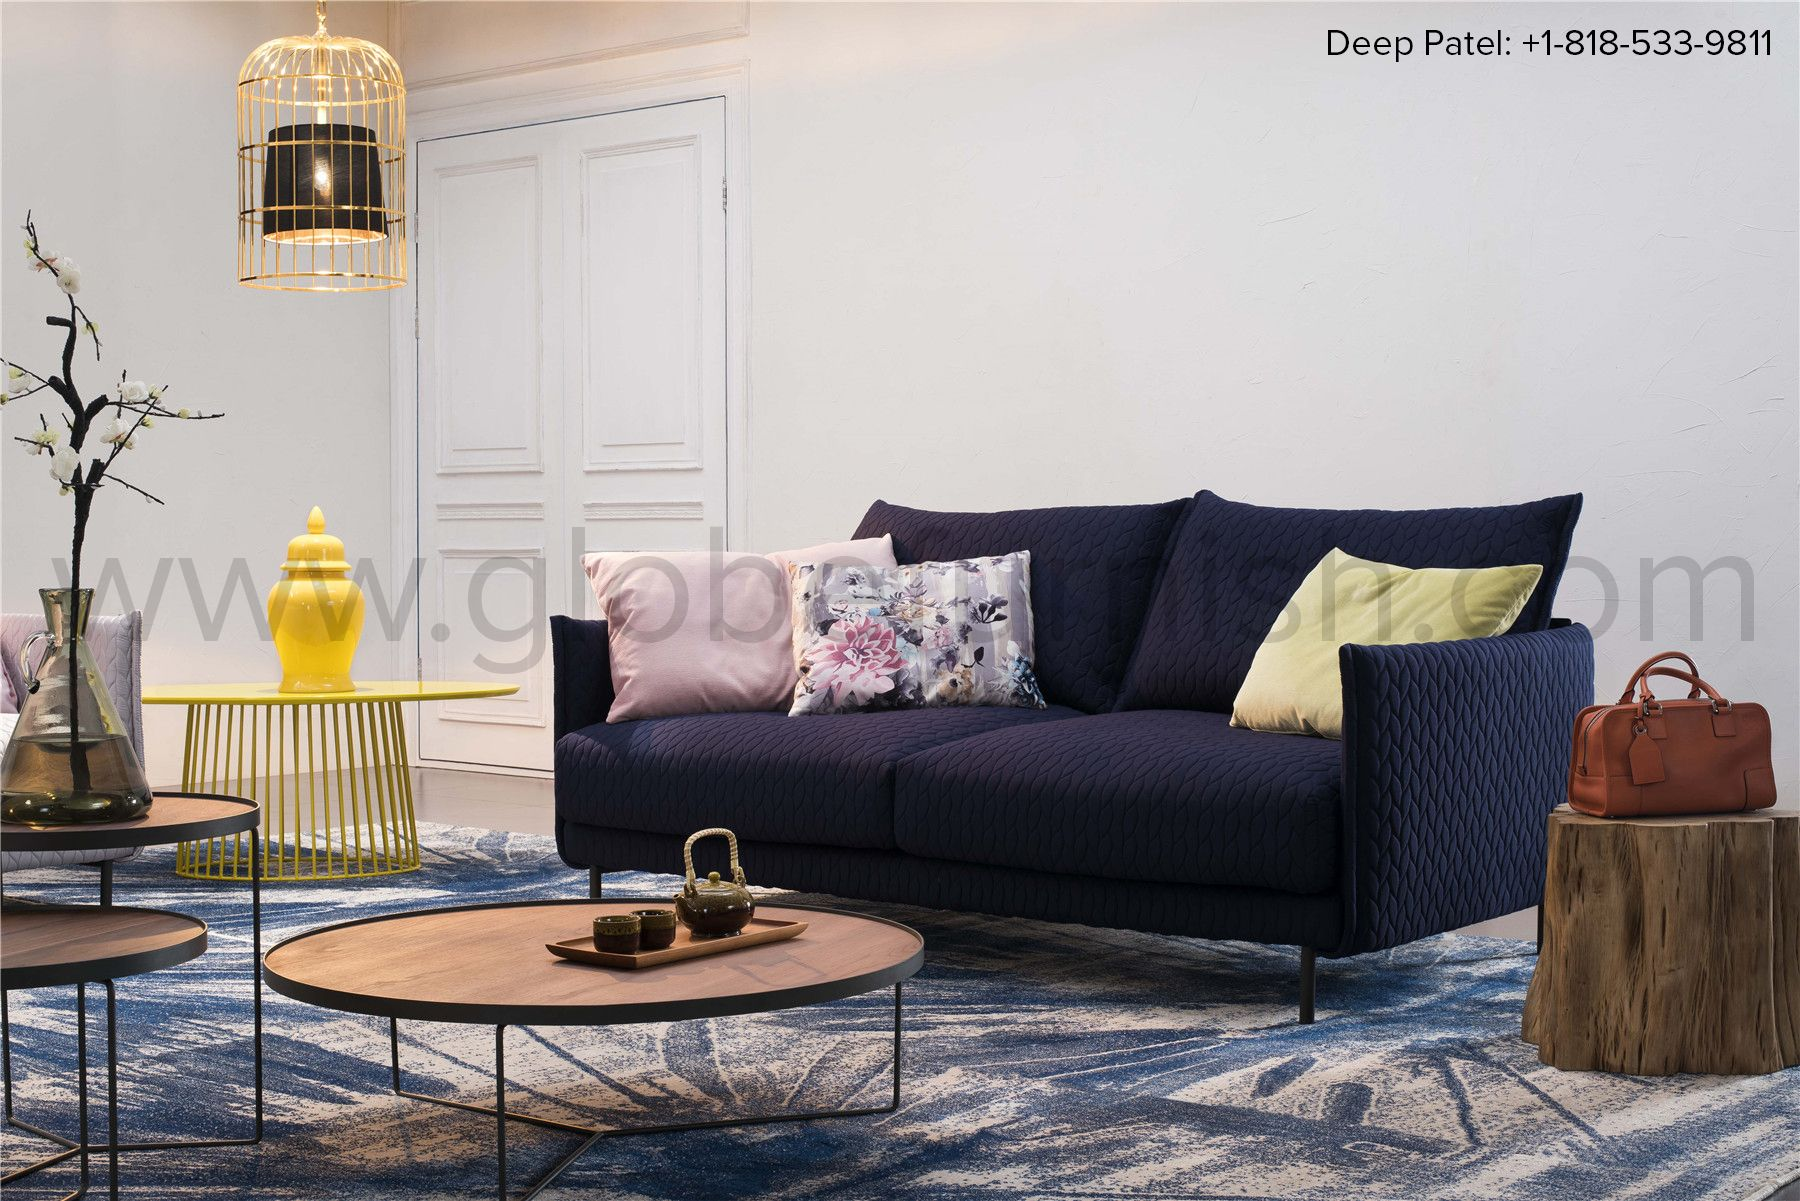 Decorate Your Home With This Intricate Sofa In Classic Royal Blue